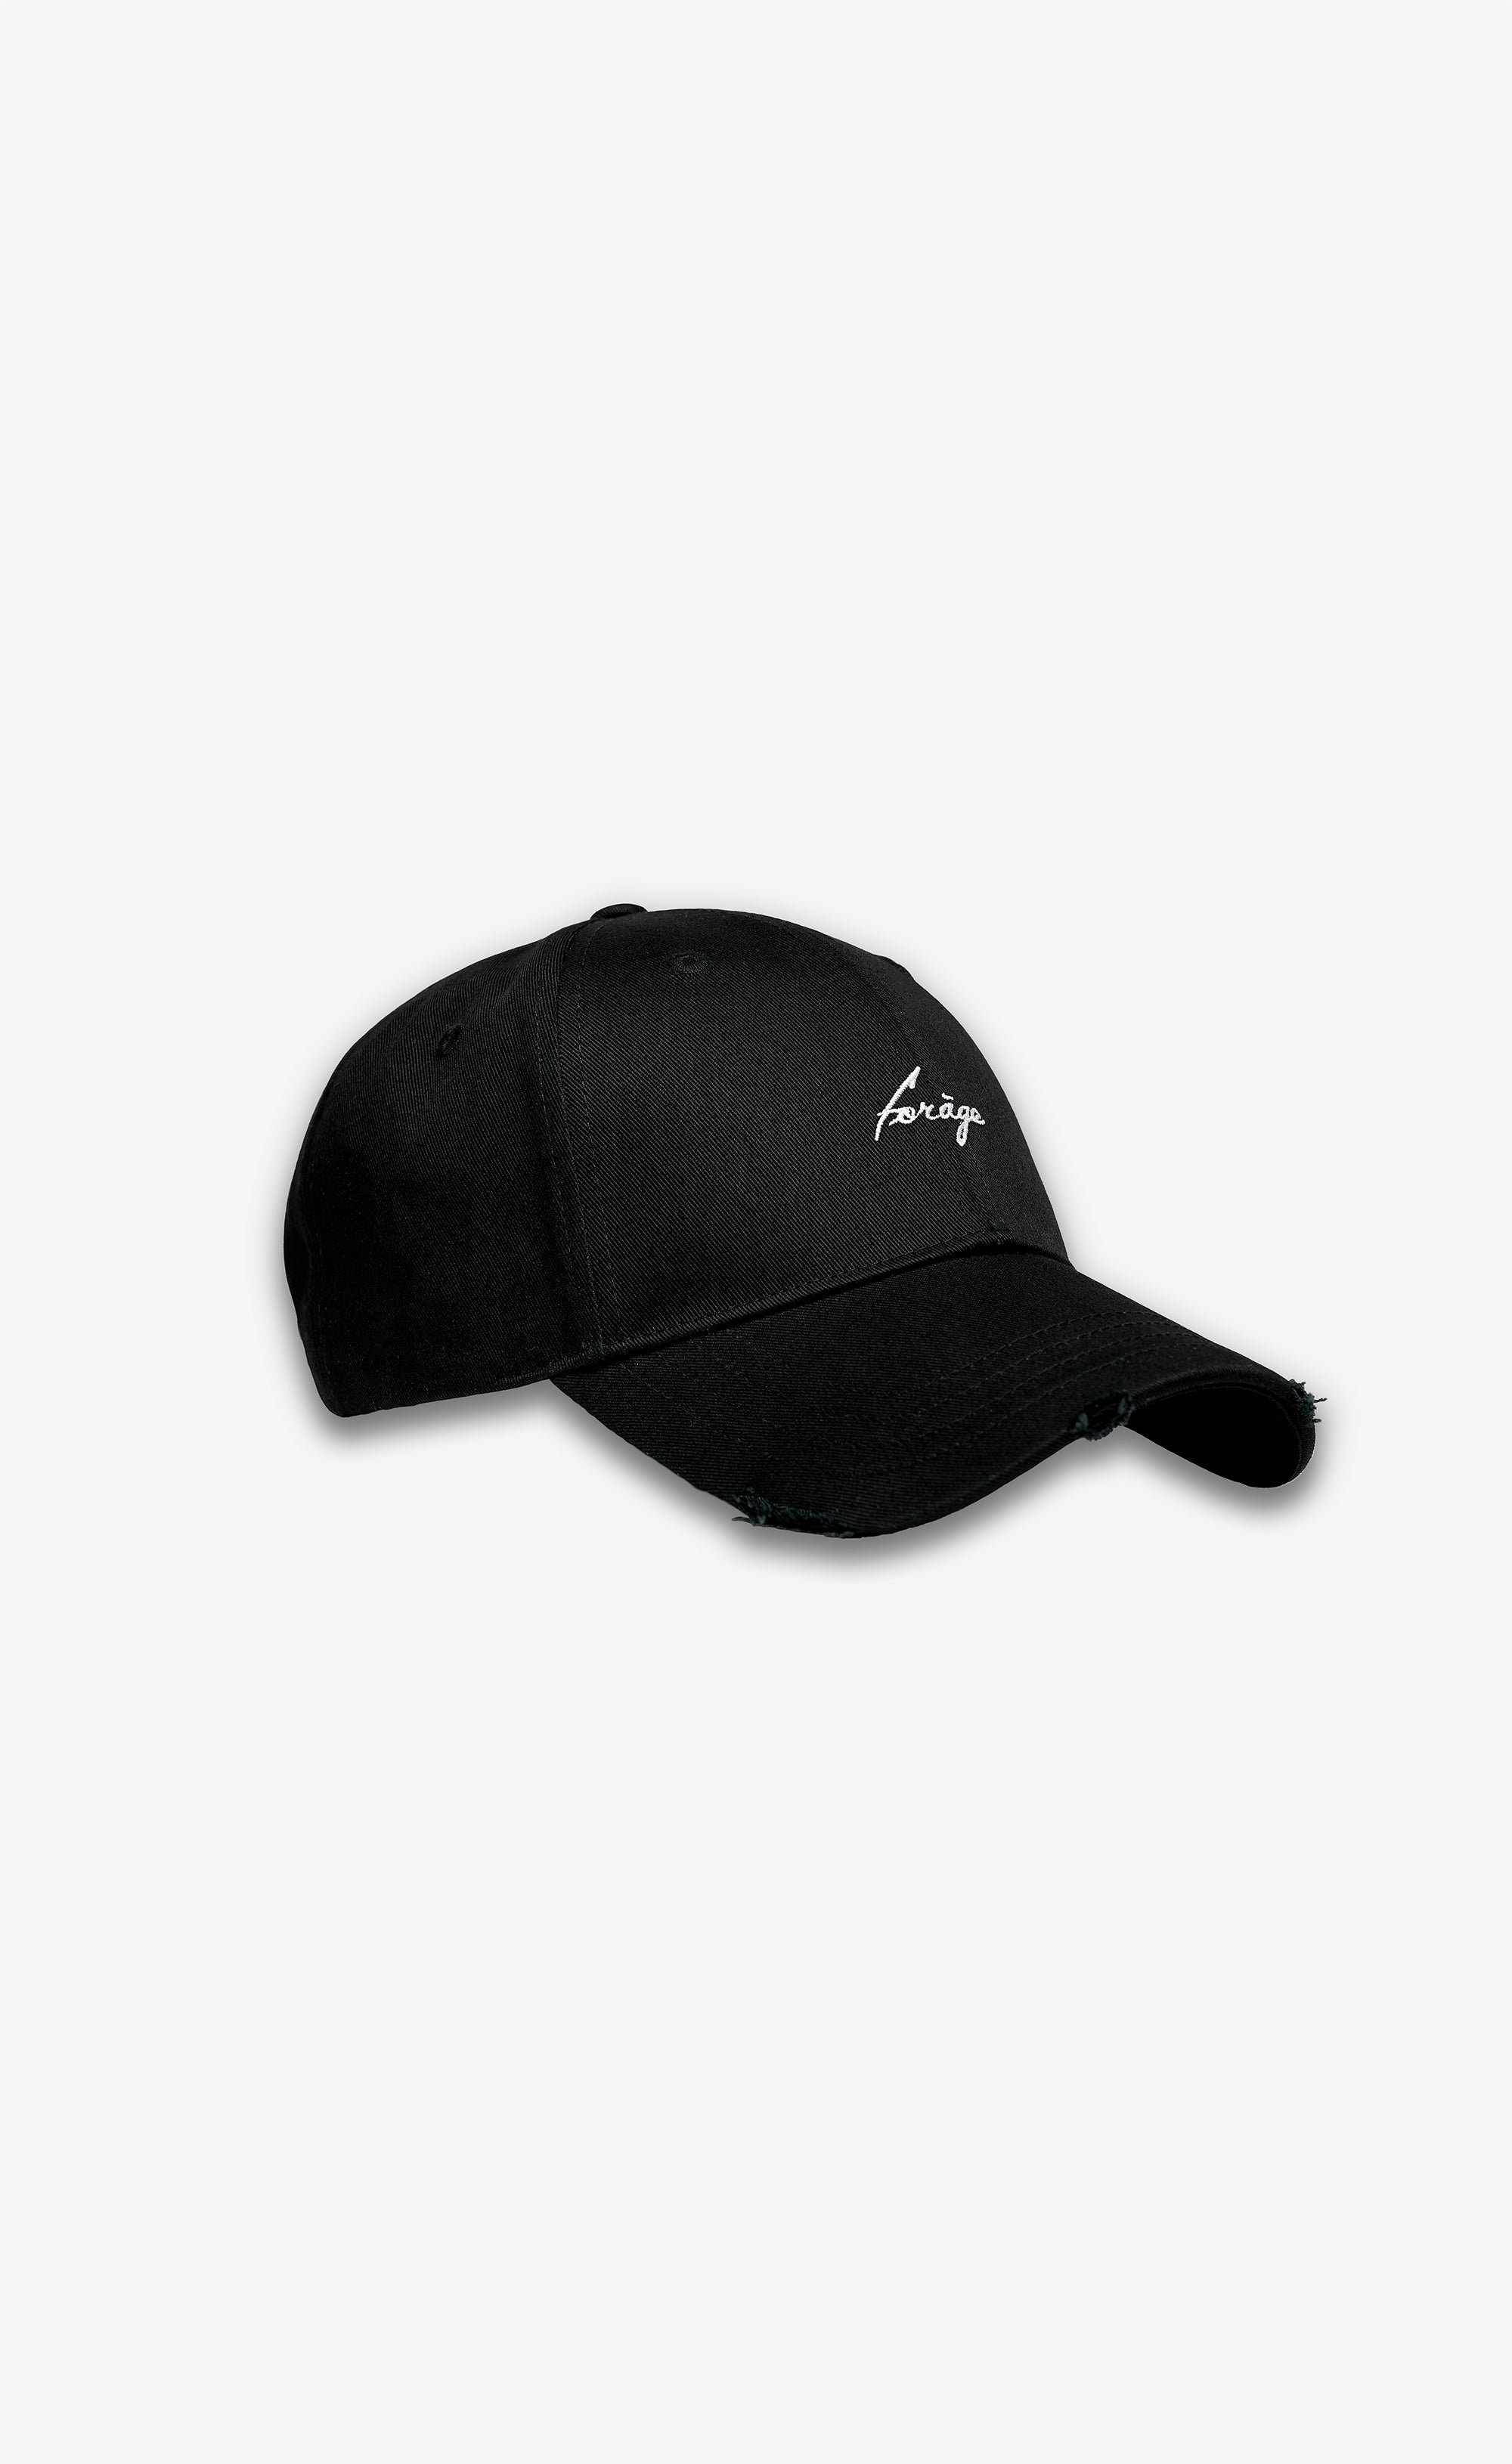 LOGO STRAPBACK CAP - Forage-Clothing